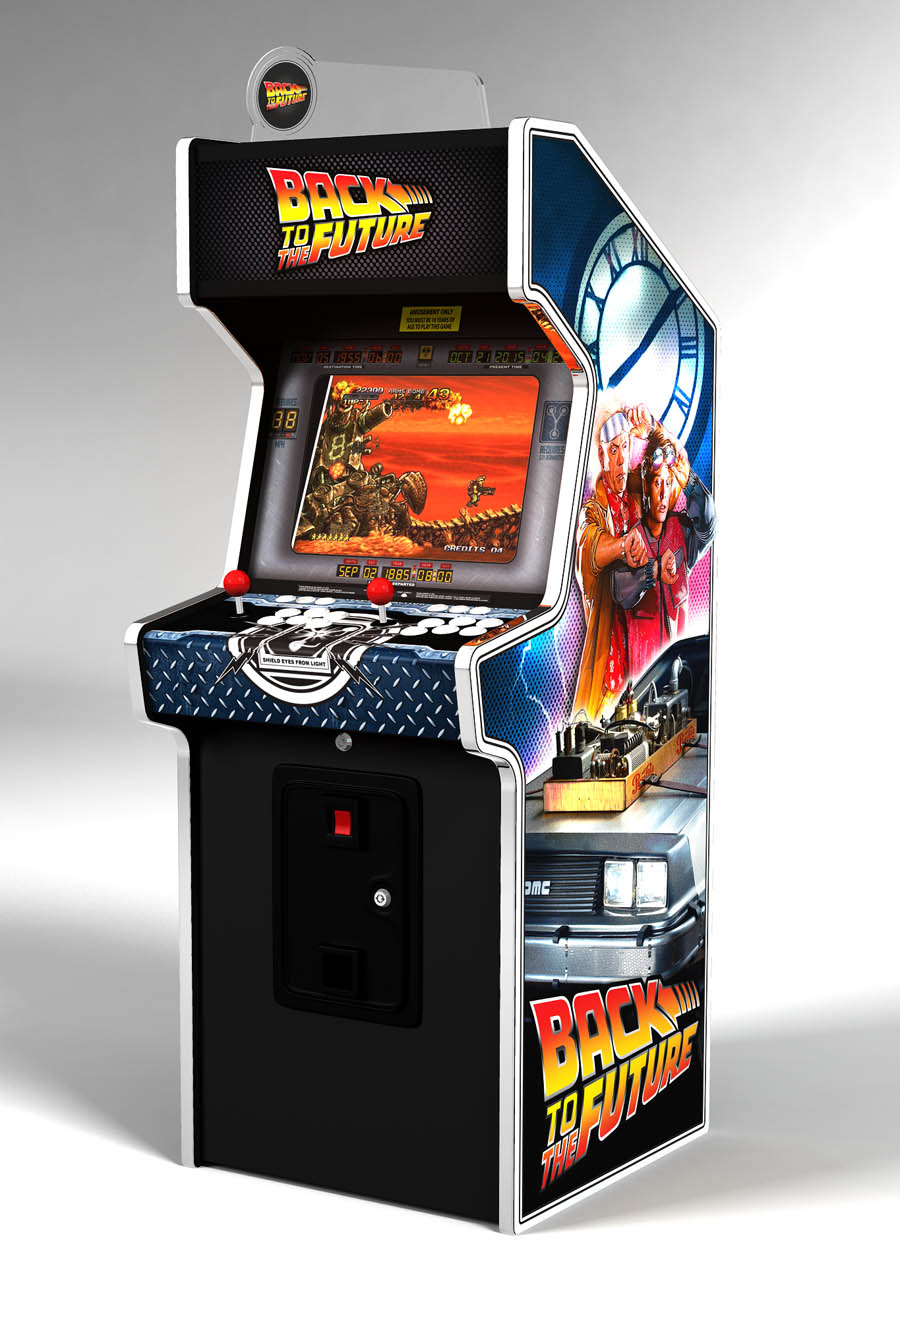 borne arcade back to the future